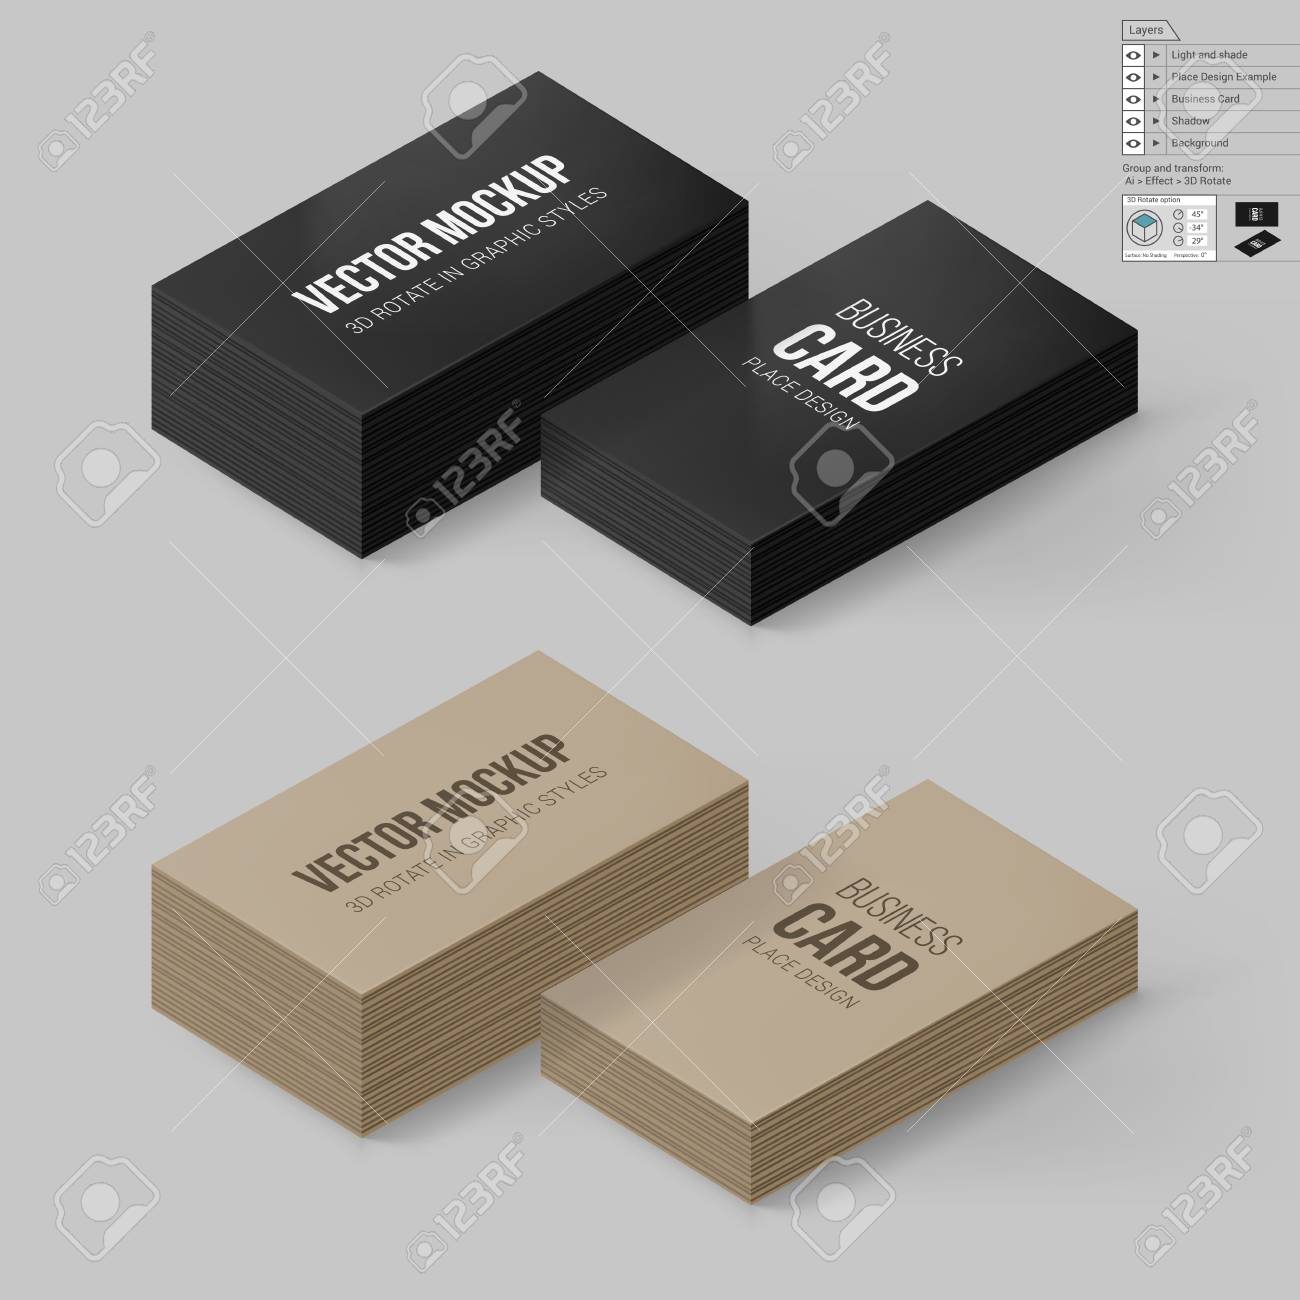 Business cards template in black and brown colors corporate business cards template in black and brown colors corporate identity branding mock up with fbccfo Choice Image